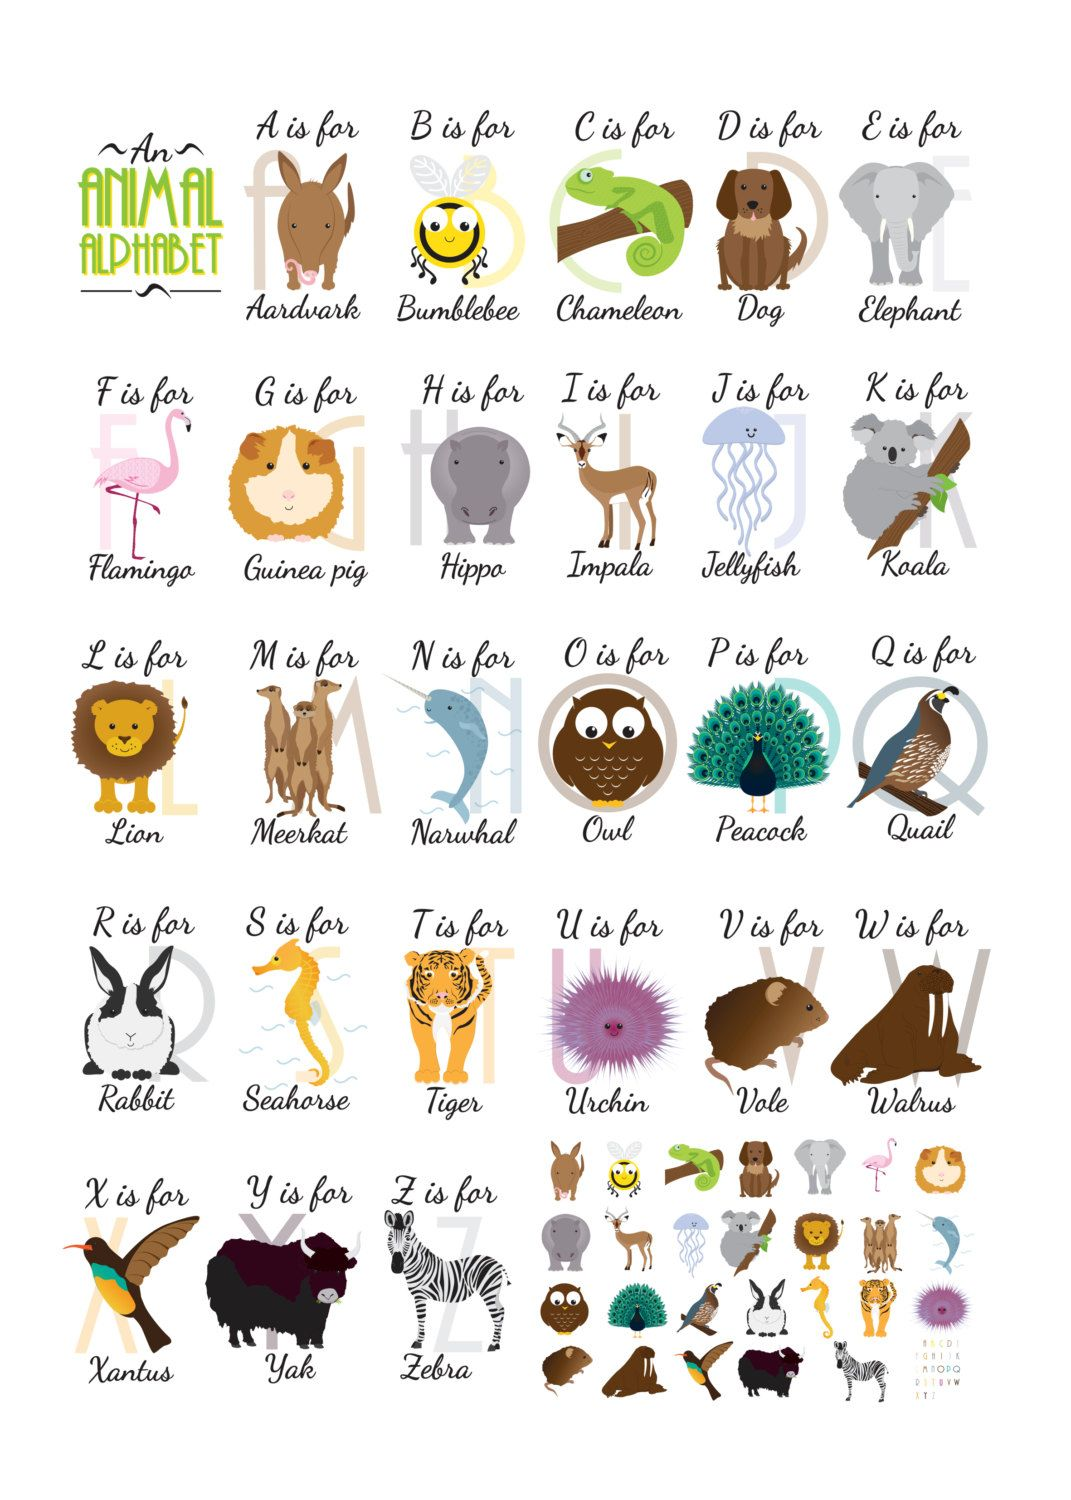 An Animal Alphabet With Images